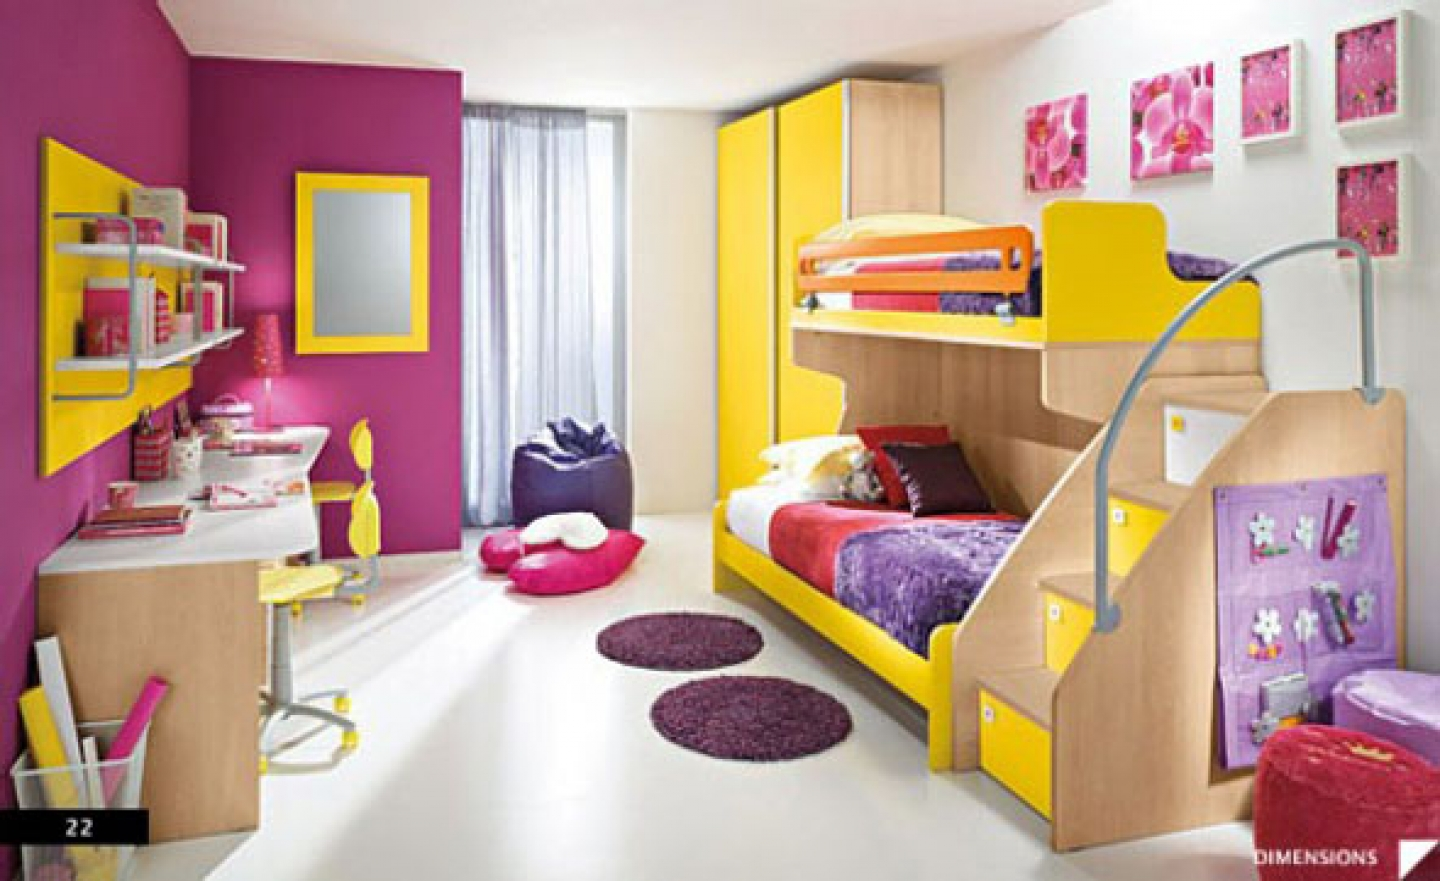 Beau This Bedroom Is For Two Small Girls, It Has Yellow Simple Furniture And A  Mix Of Pink And White Wall.